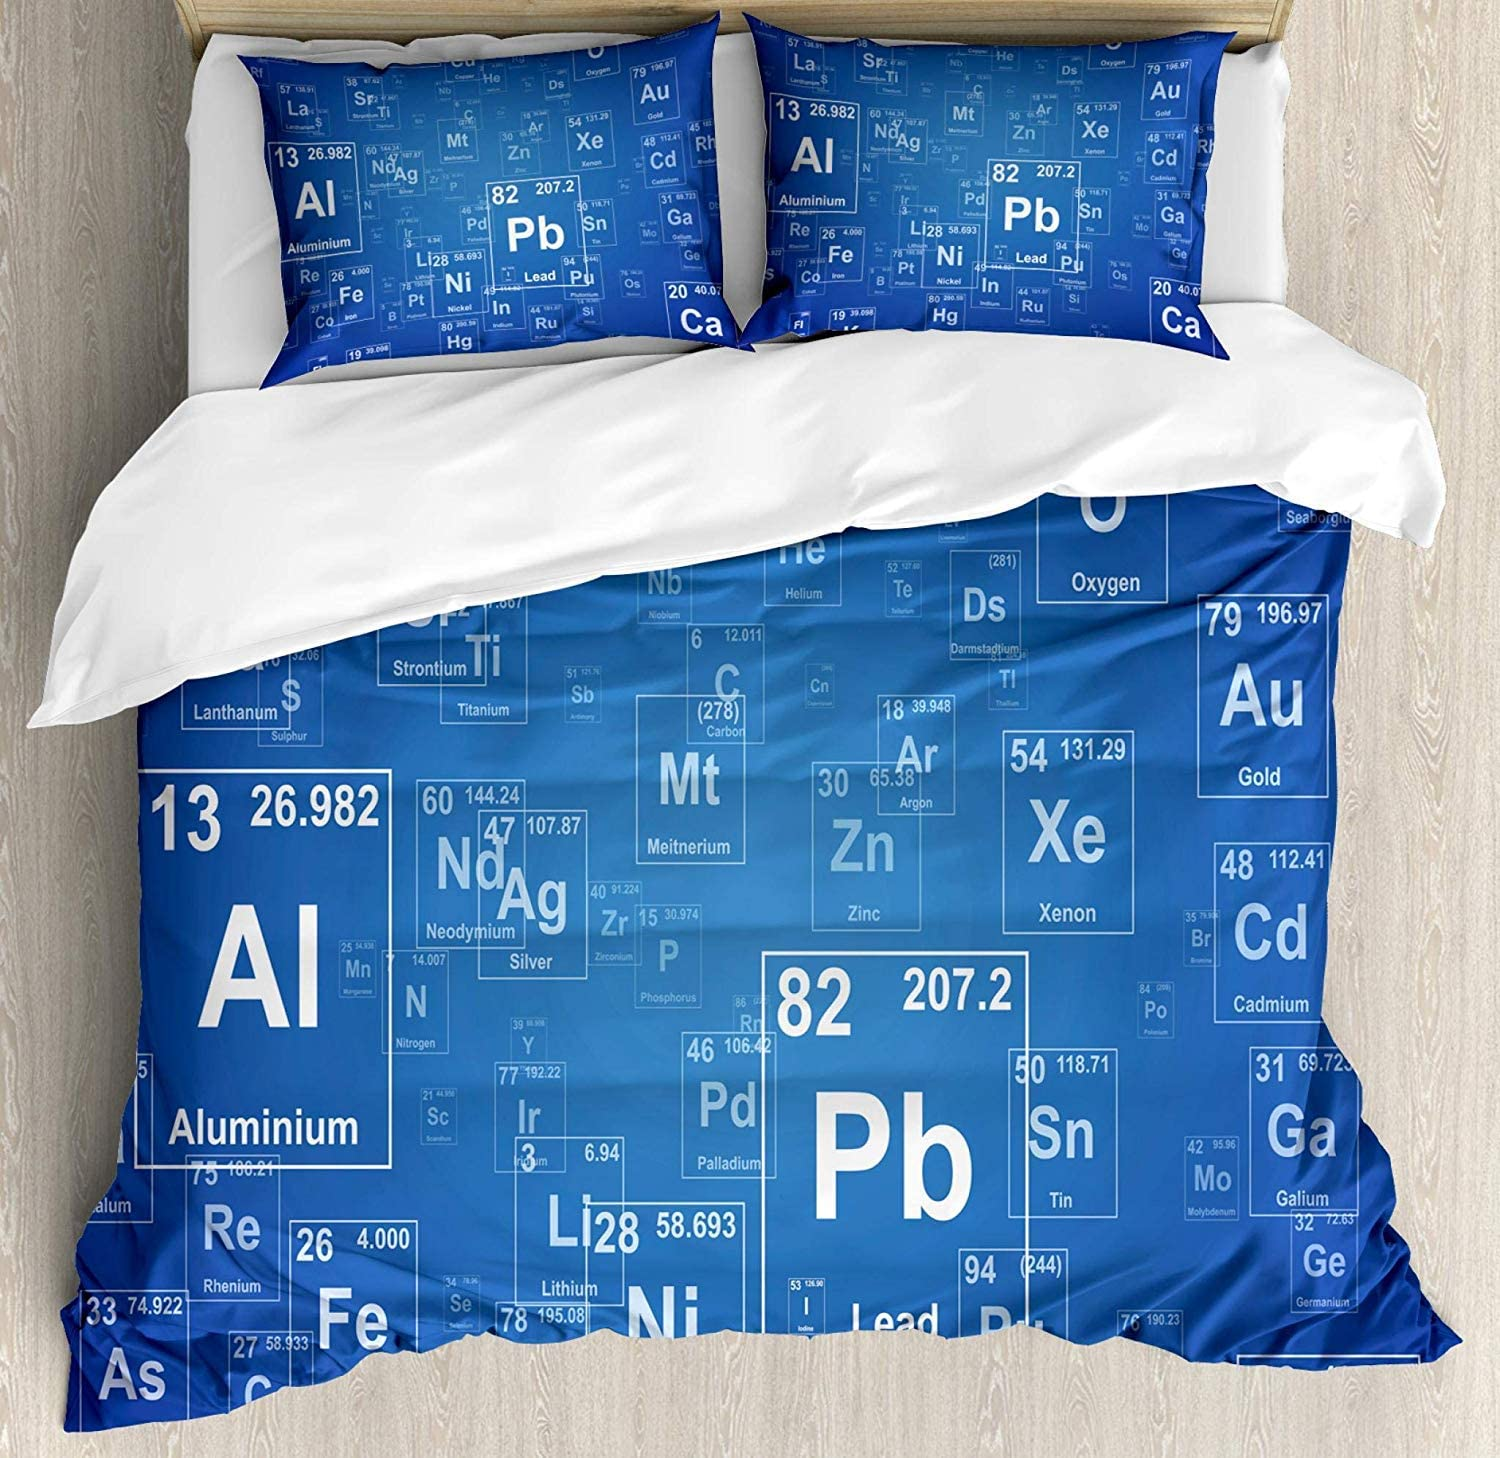 Science Duvet Cover Set, Chemistry Tv Show Inspired Image with Periodic Element Table Image Print Art, Decorative 3 Piece Bedding Set with 2 Pillow Shams,, Blue and White,King Size 104x90